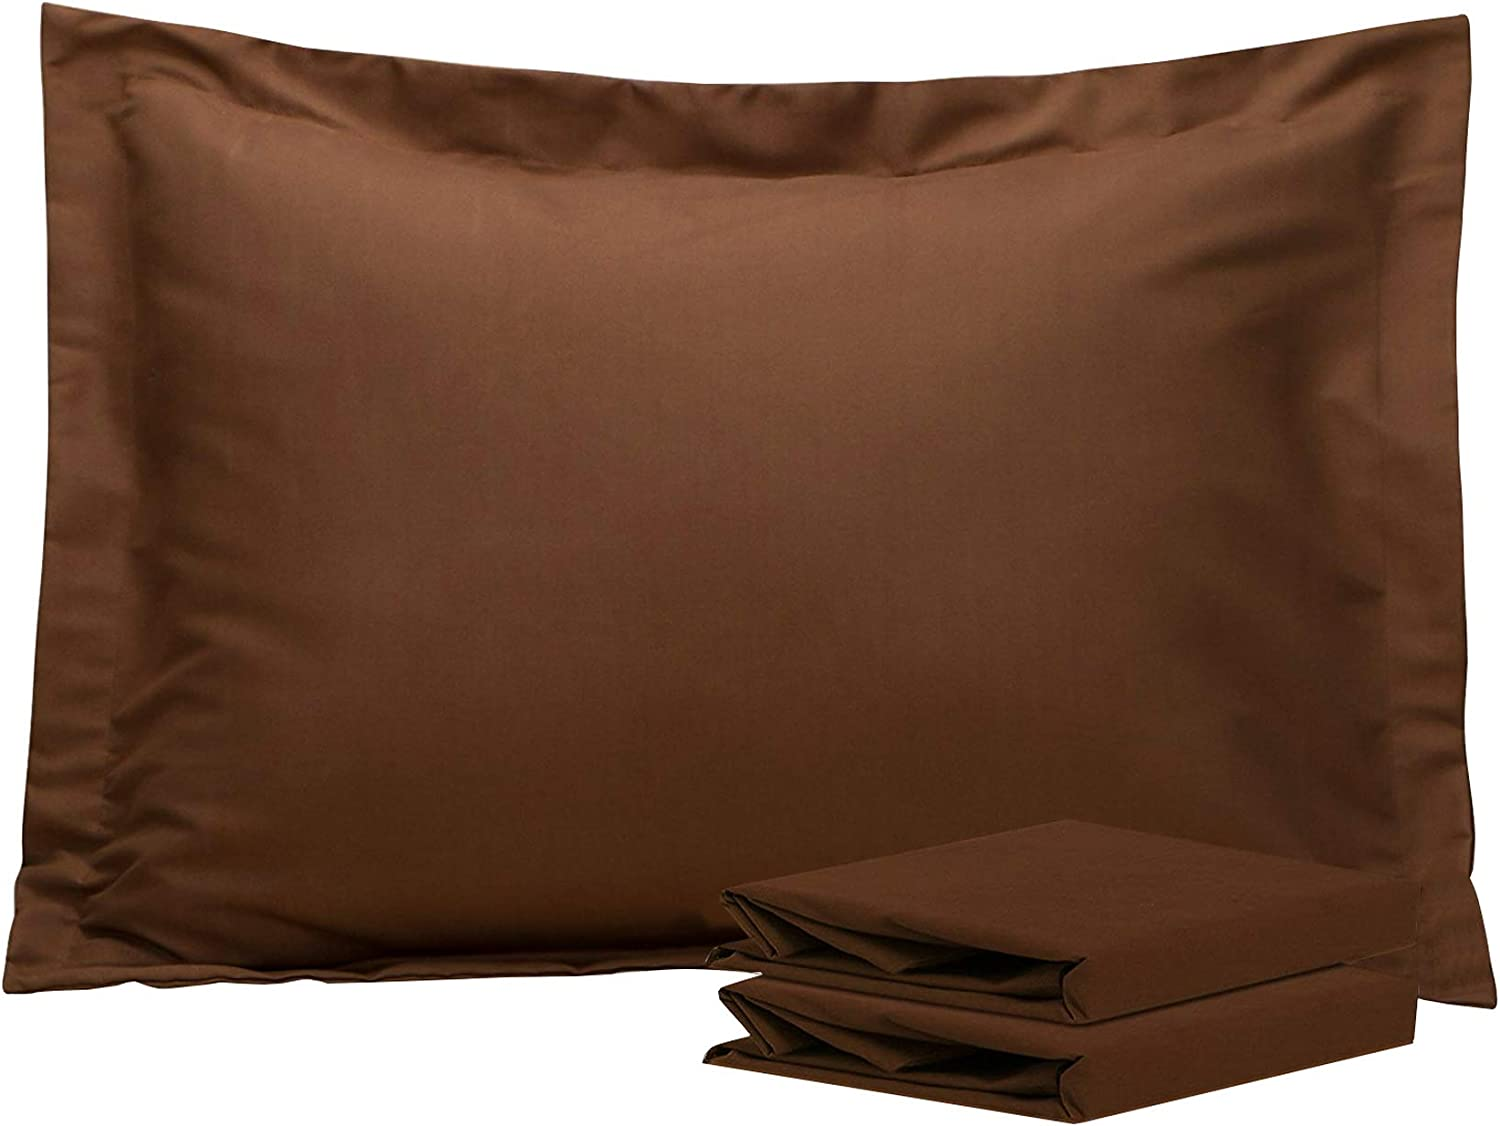 NTBAY Standard Pillow Shams, Set of 2, 100% Brushed Microfiber, Soft and Cozy, Wrinkle, Fade, Stain Resistant, Standard, Brown